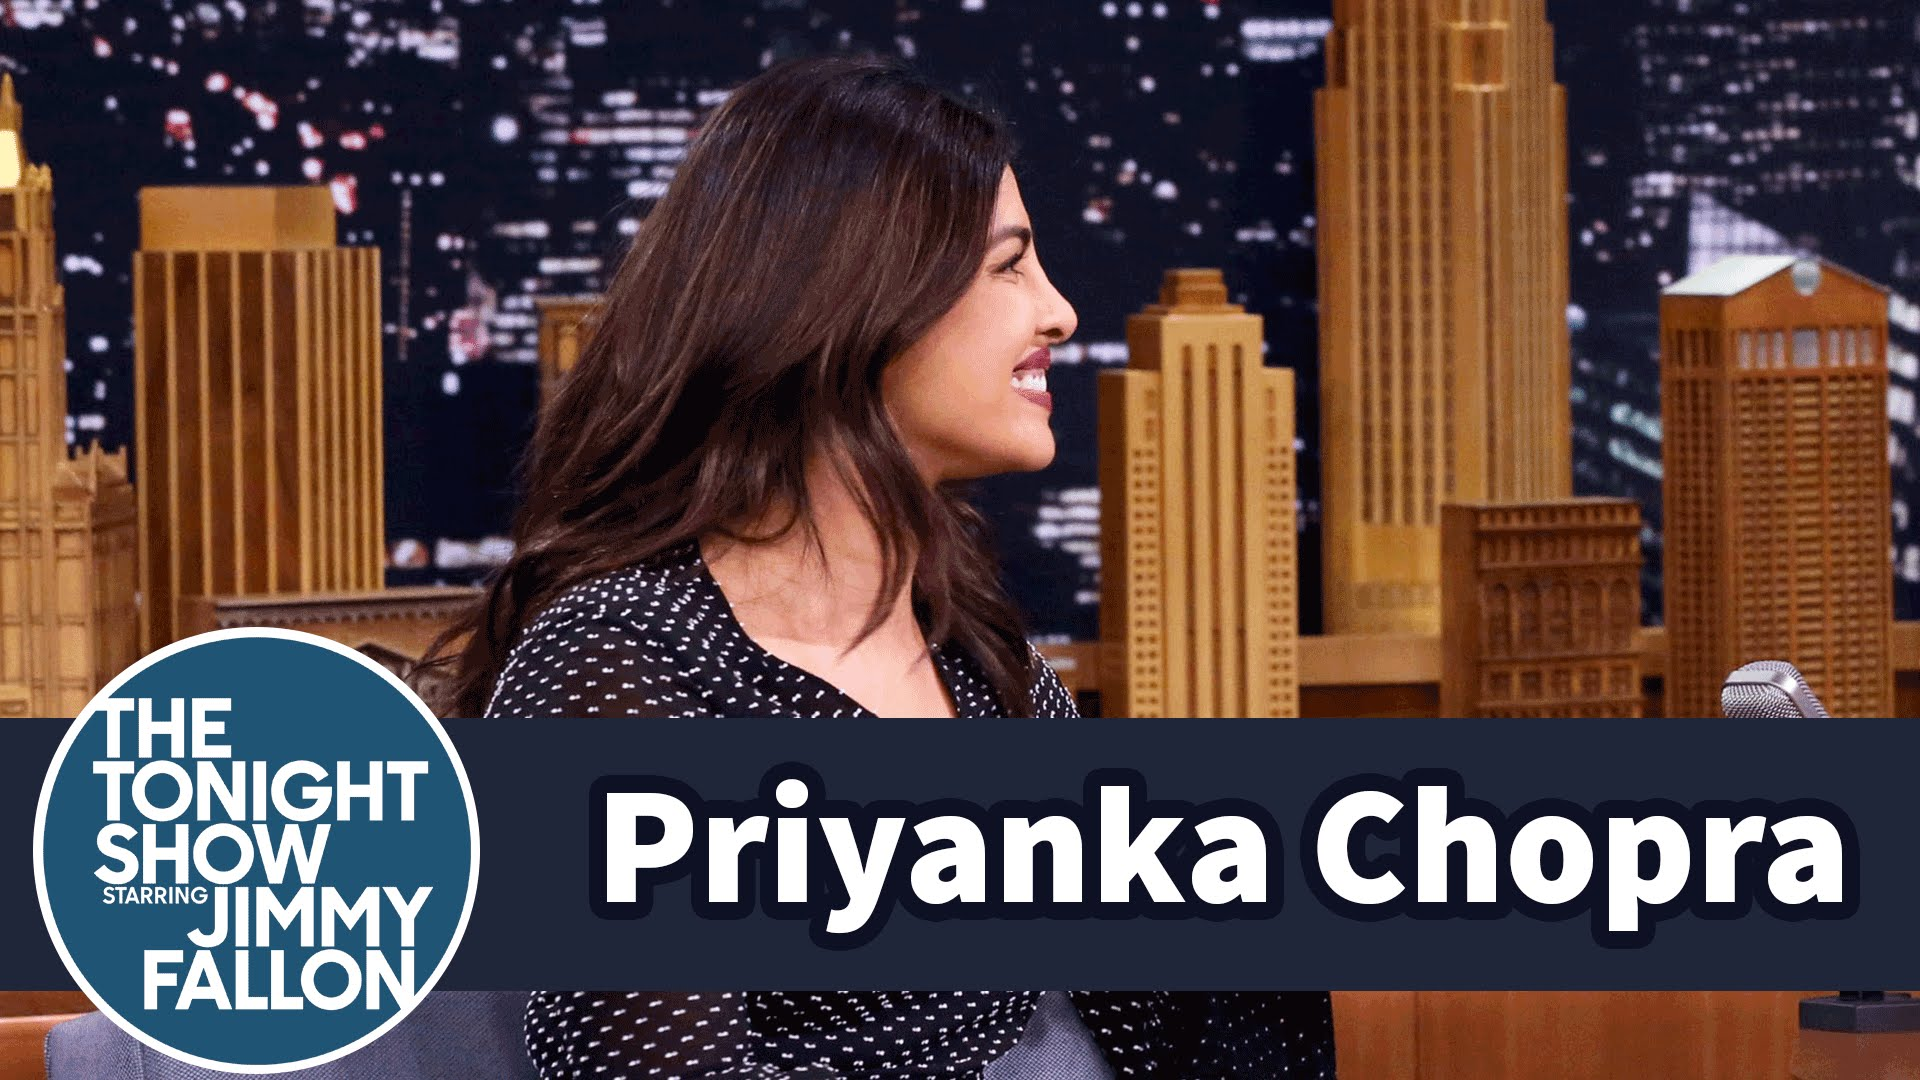 Priyanka Chopra on The Tonight Show starring Jimmy Fallon